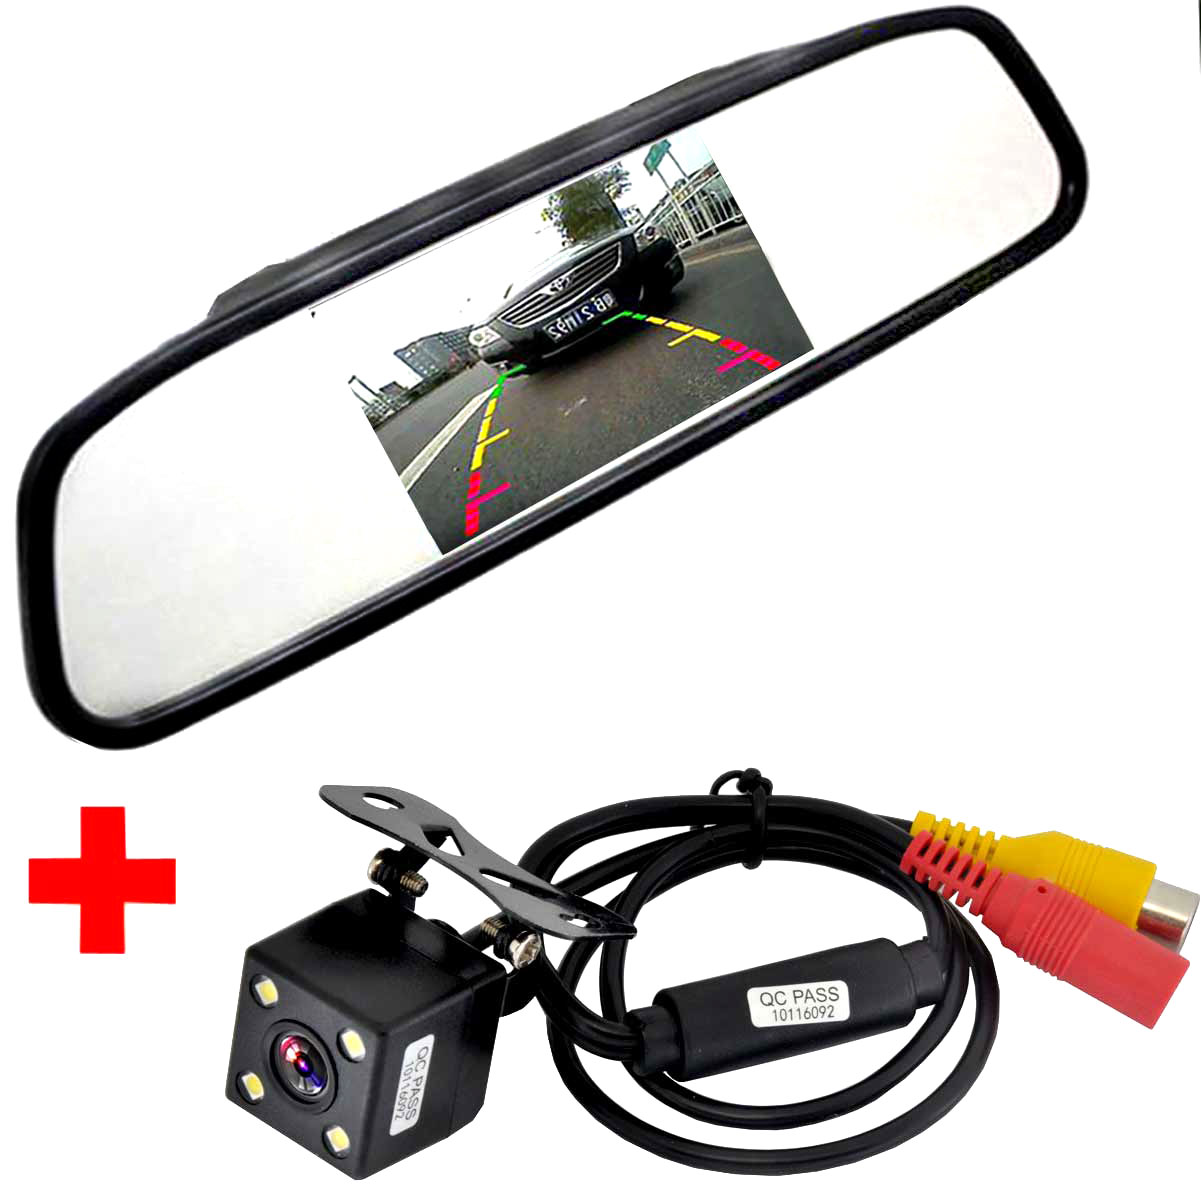 Car Auto Estacionamento Monitor de Vídeo HD, LED Night Vision Invertendo CCD Car Câmara de Visão Traseira Com 4.3 polegada Retrovisor Do Carro Monitor Espelho